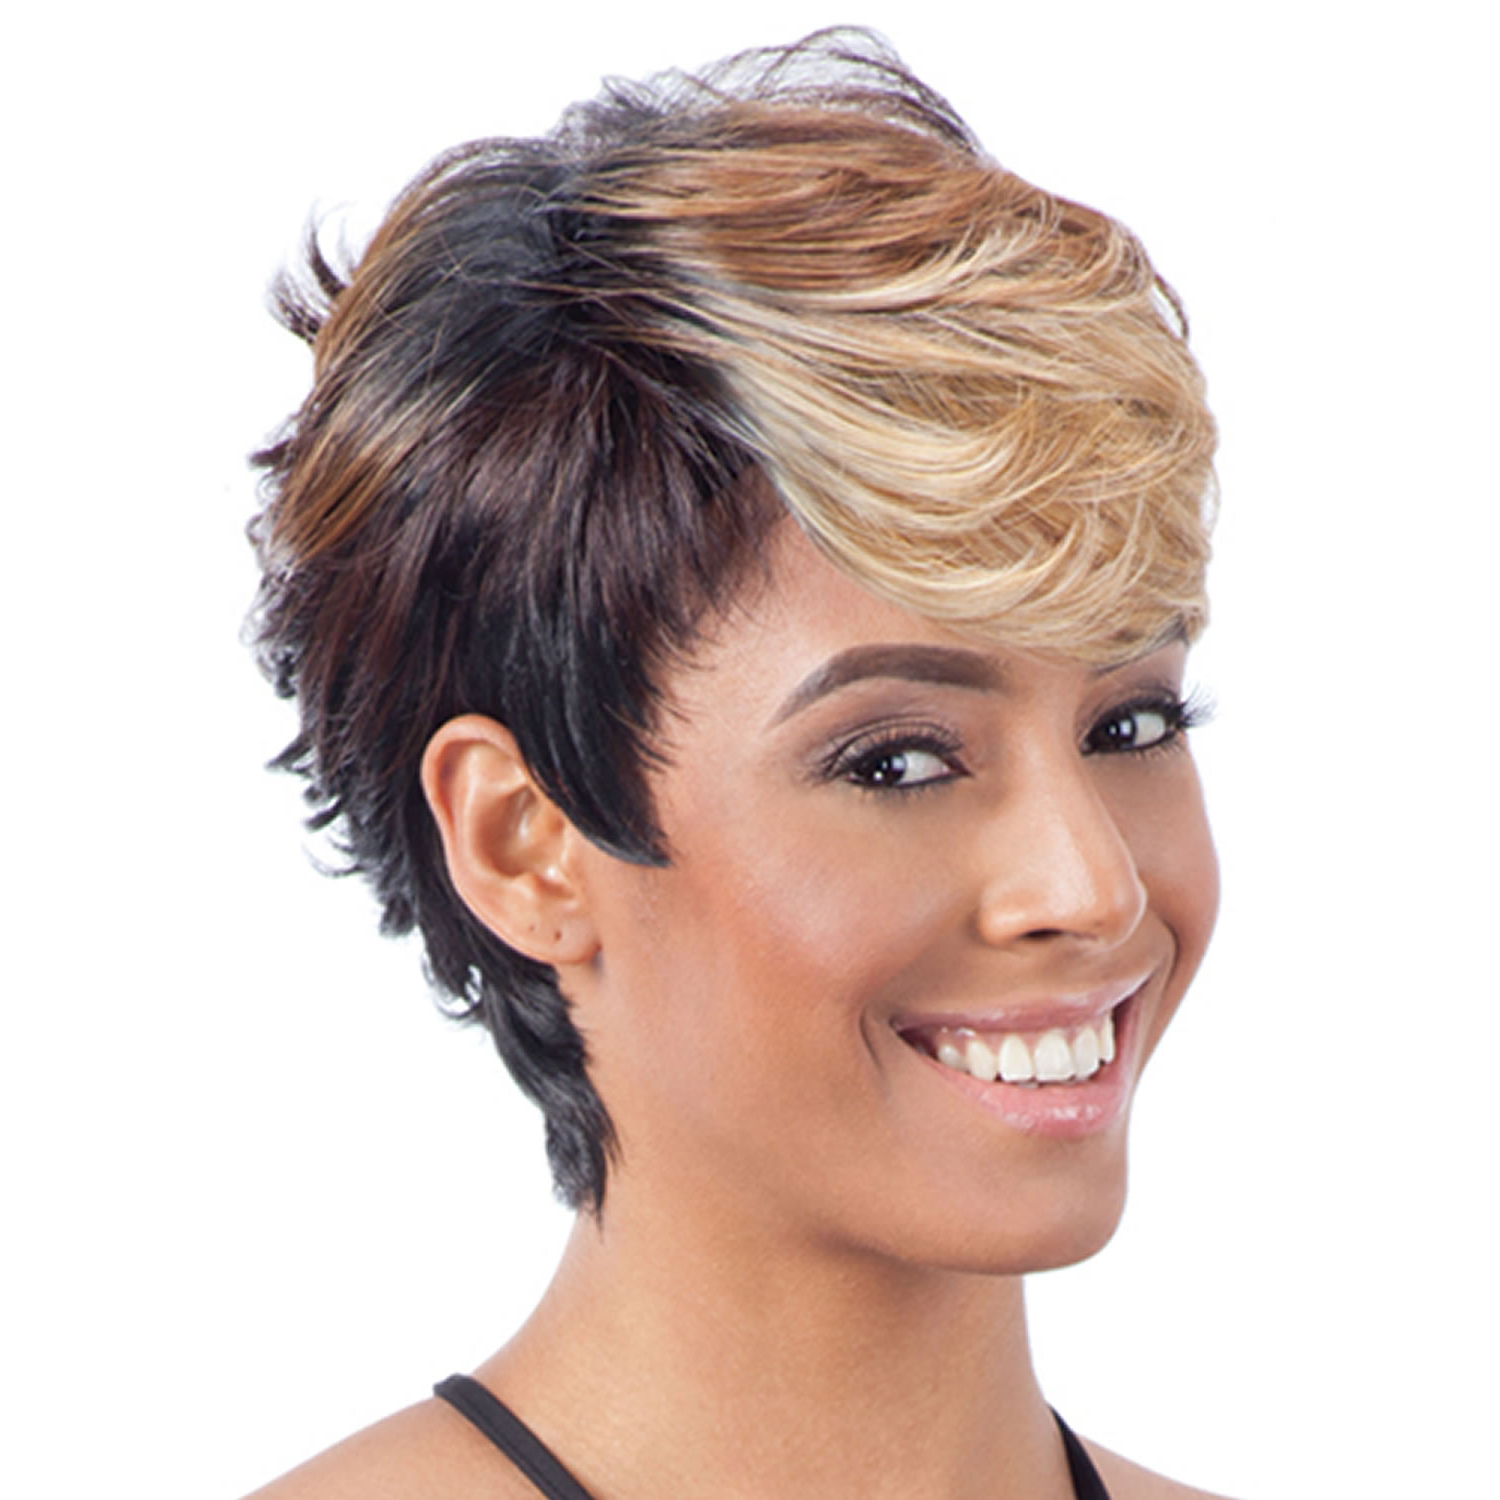 2018 Short Haircuts For Black Women – 57 Pixie Short Black Hair In Short Haircuts For Black Women With Oval Faces (View 22 of 25)